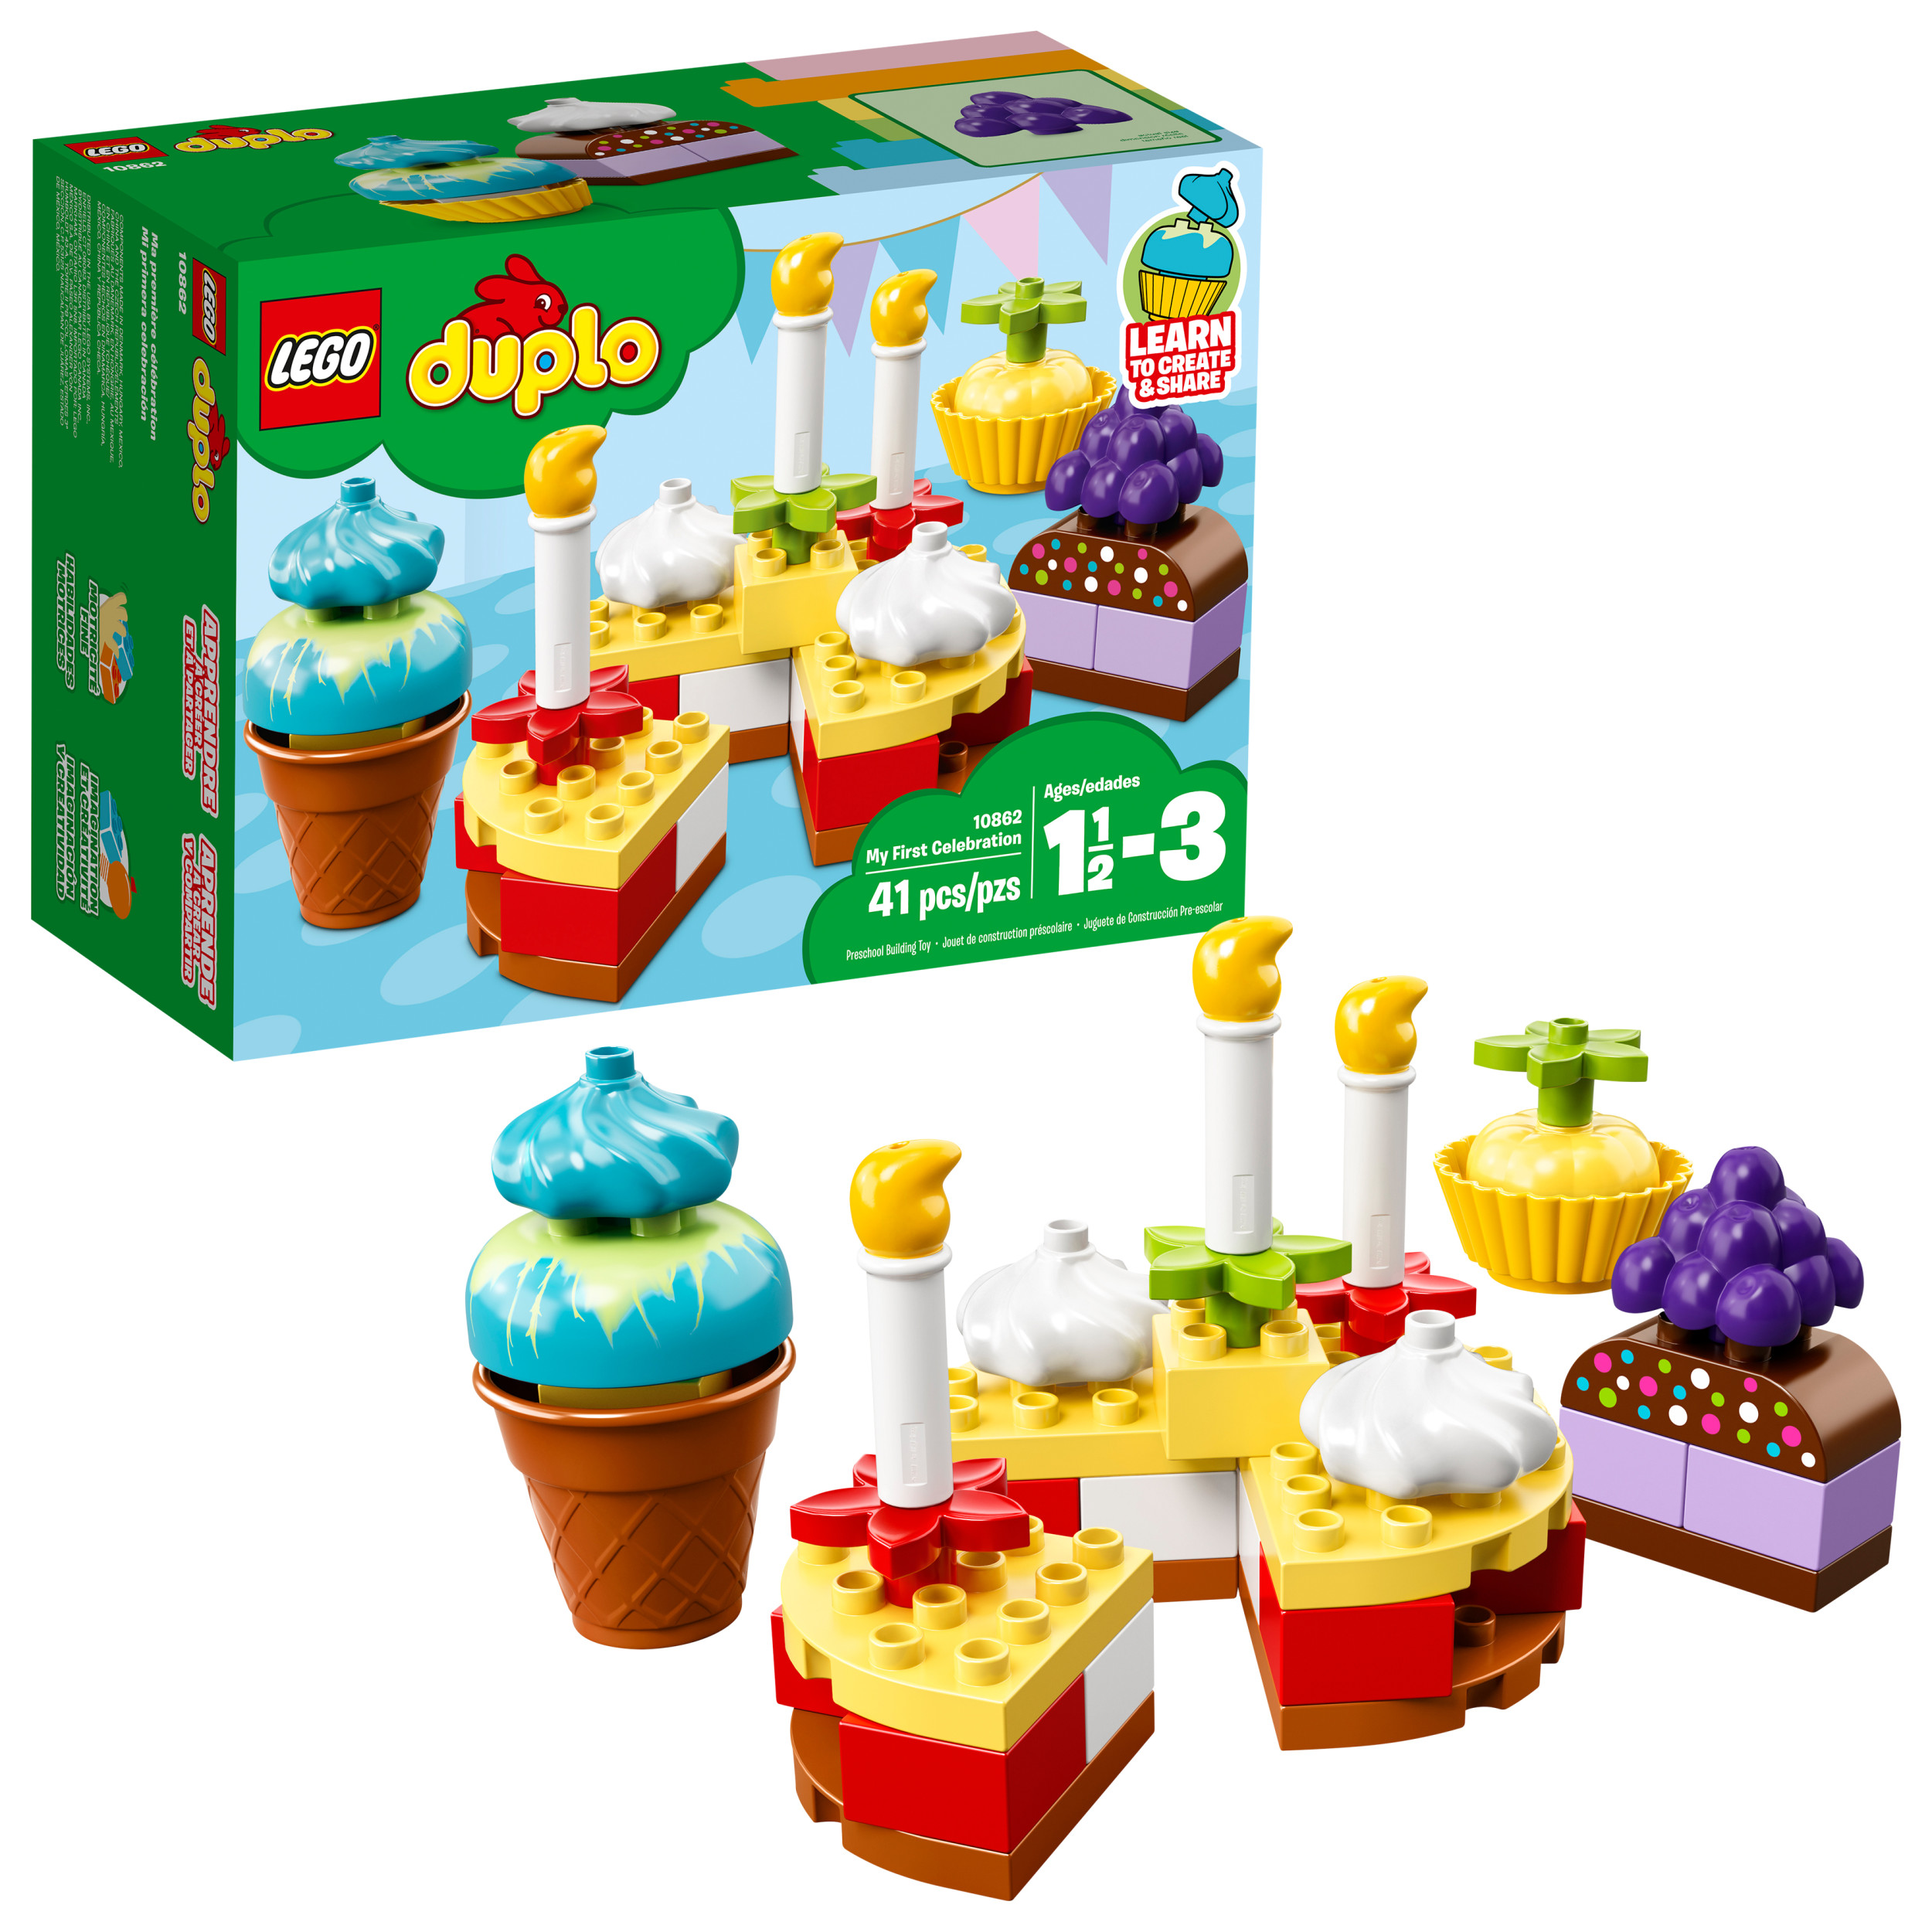 Lego Duplo My First Celebration 10862 Building Blocks 41 Pieces